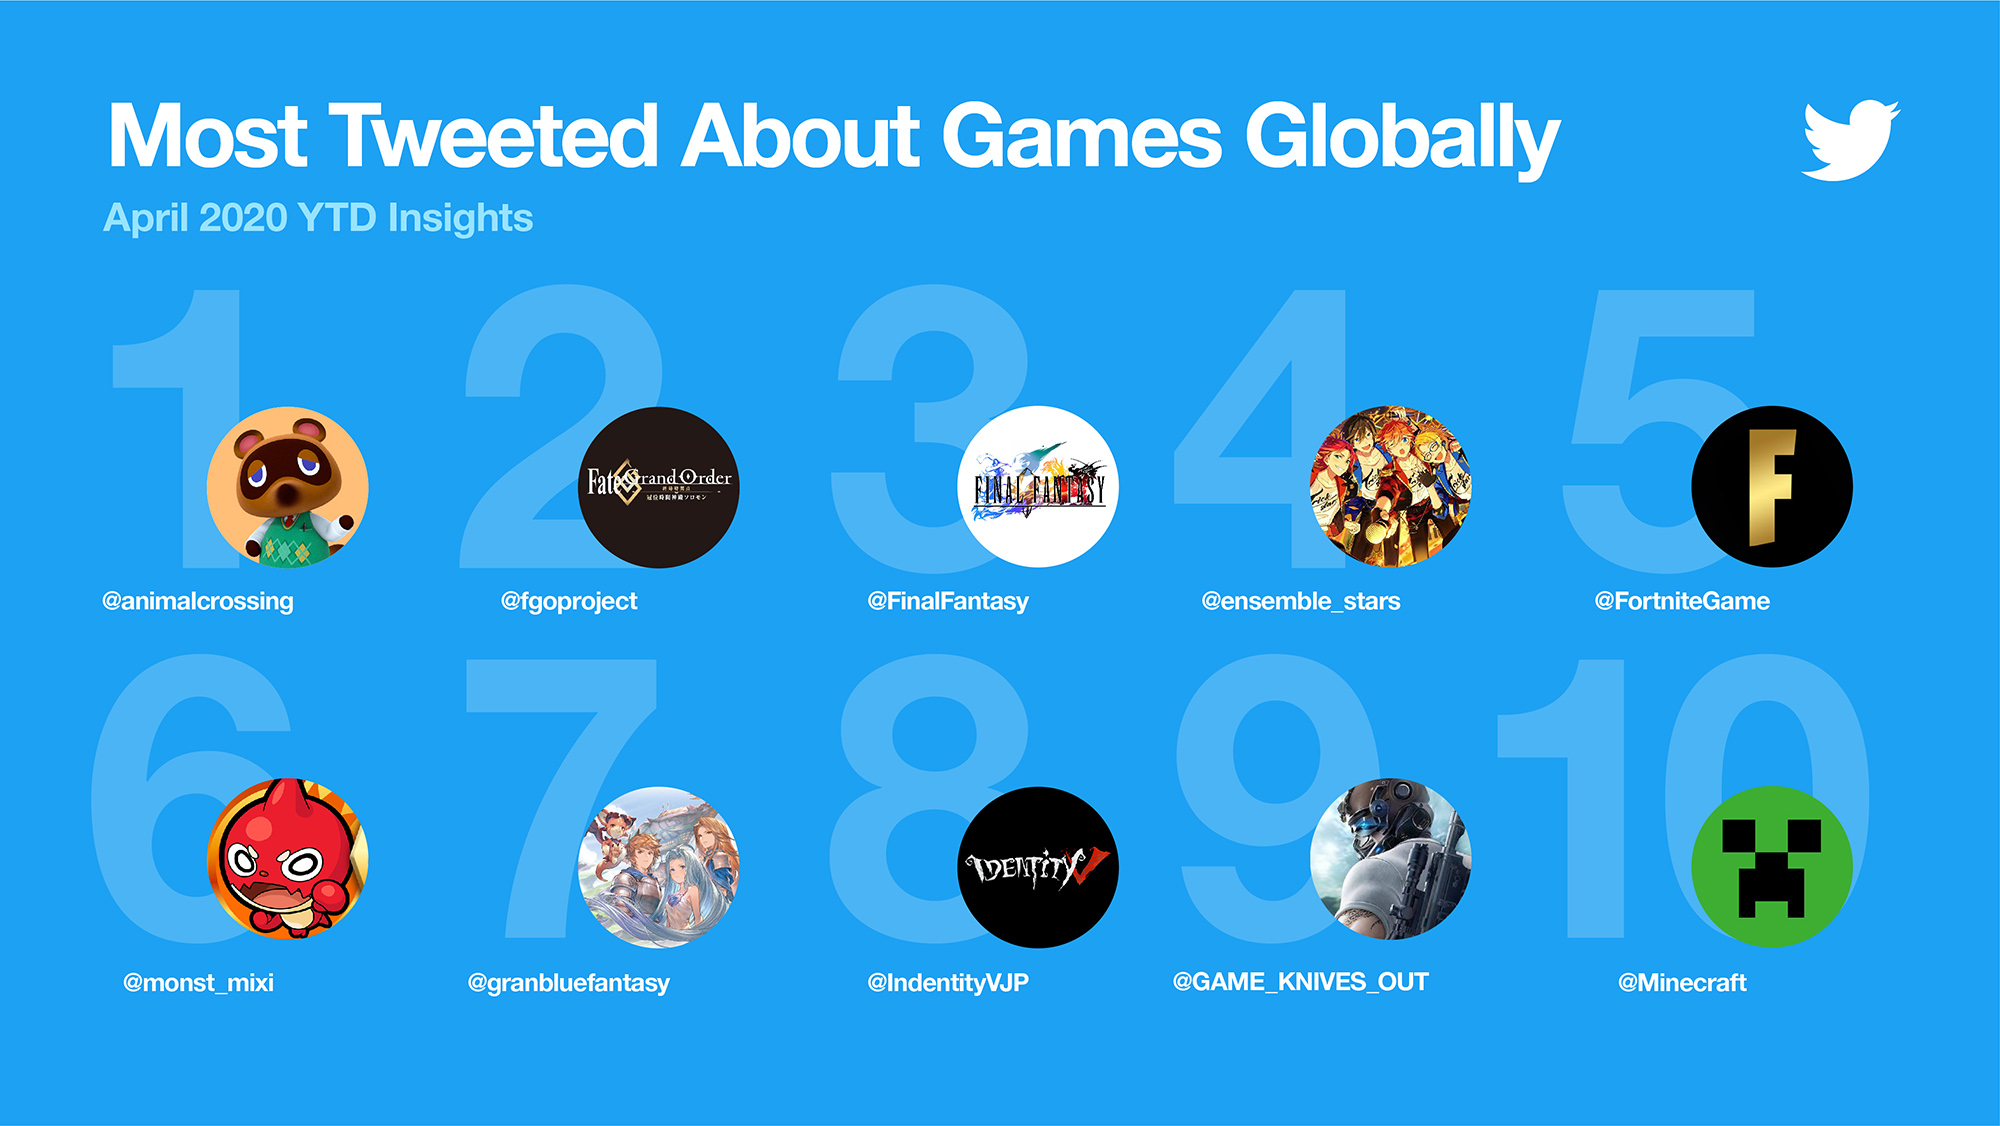 Twitter gaming insights